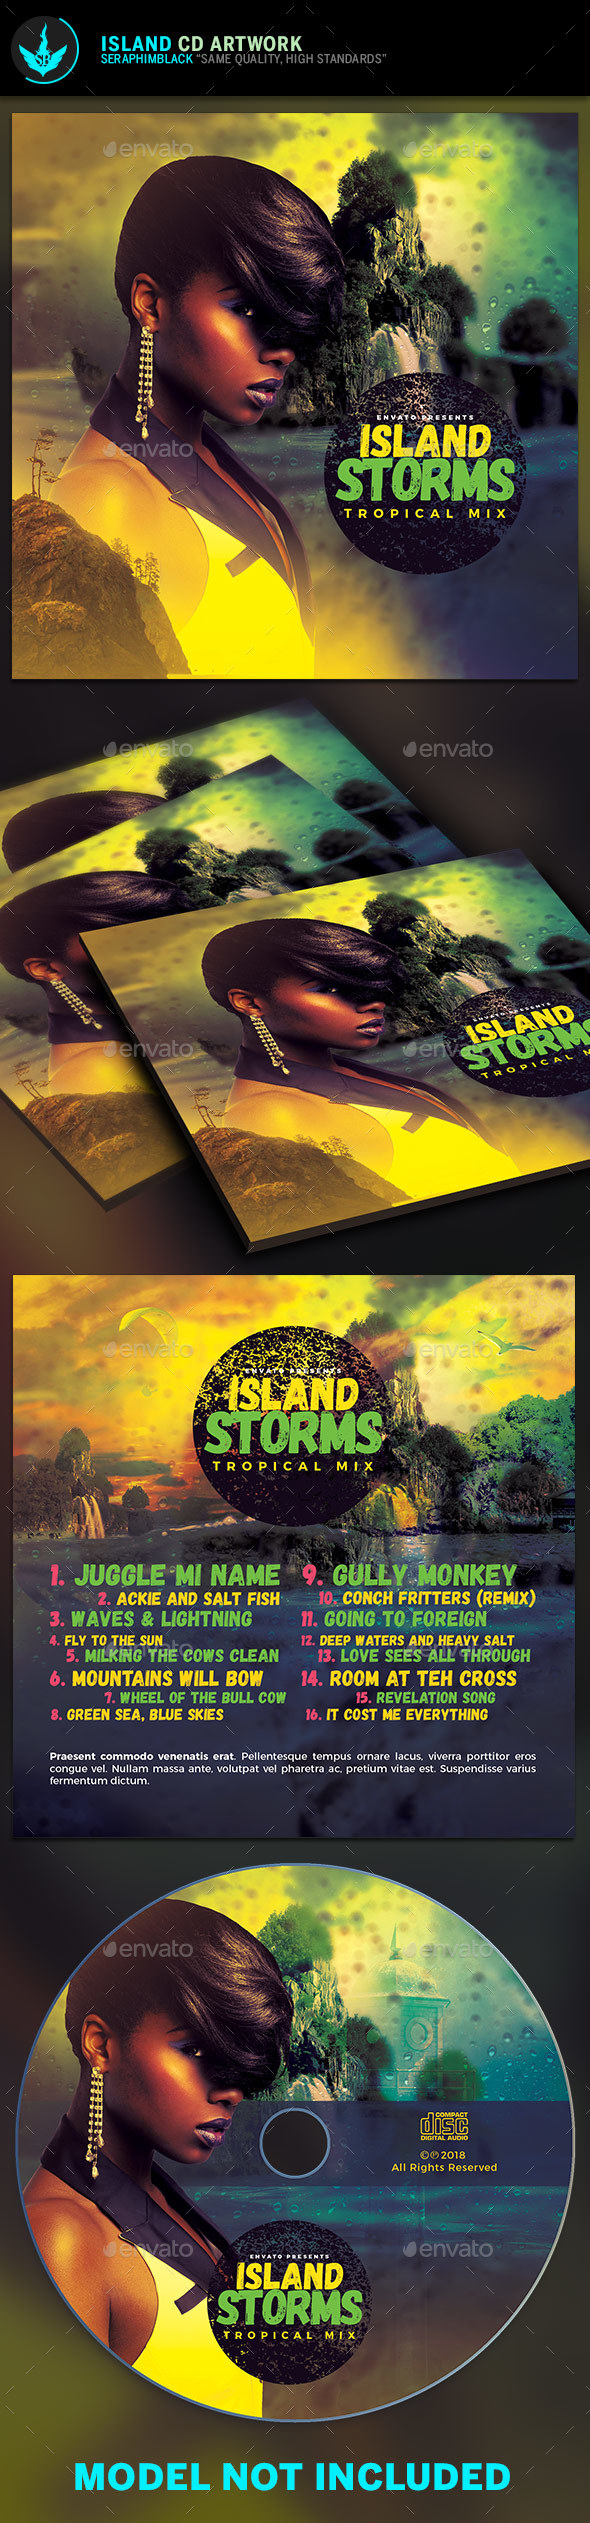 Island CD Artwork Template - CD & DVD Artwork Print Templates